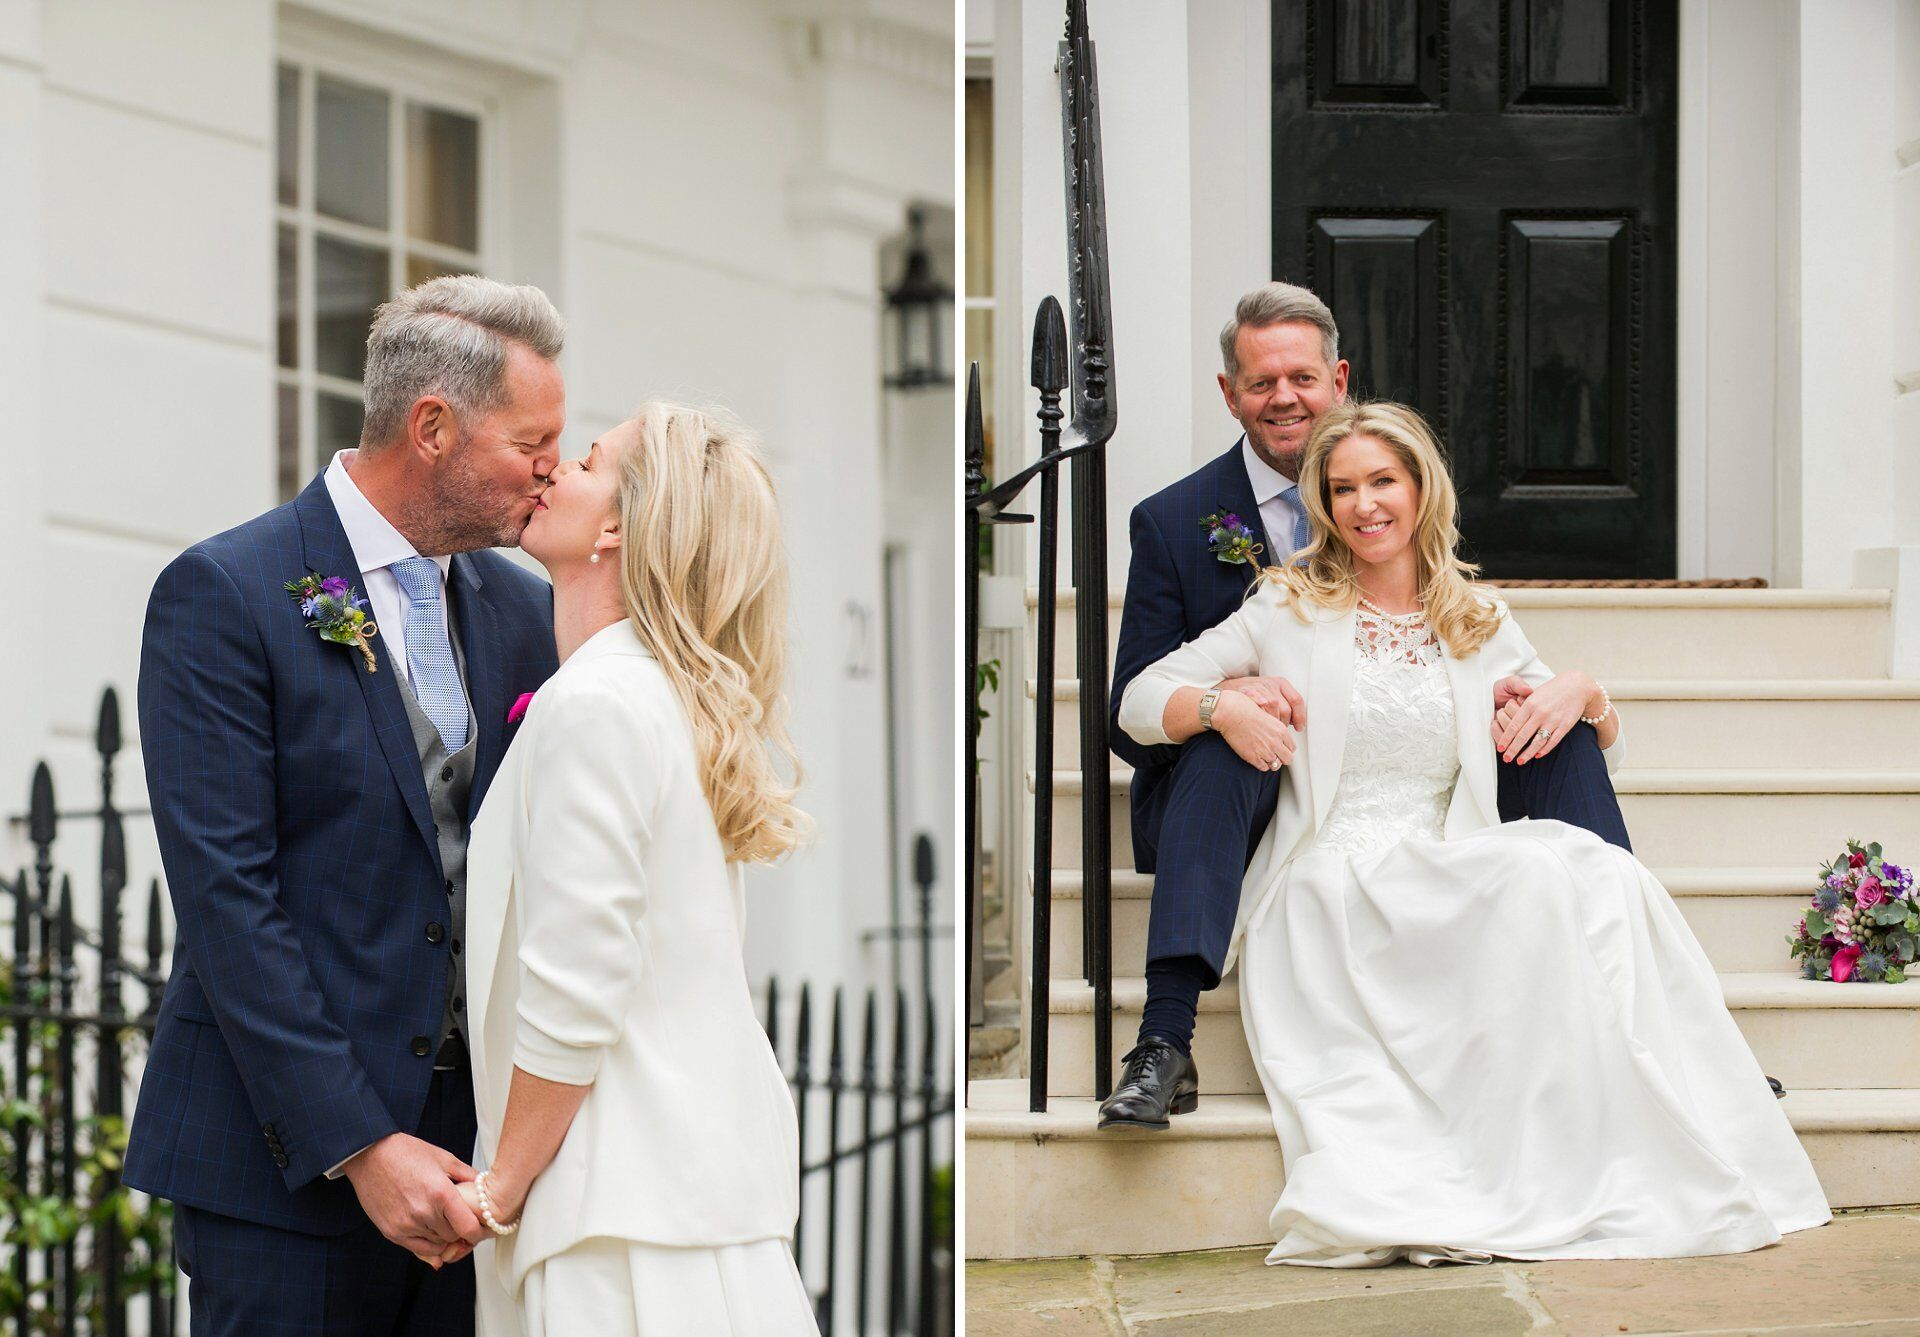 bride and groom in a chelsea side street with black railings and white stucco buildings